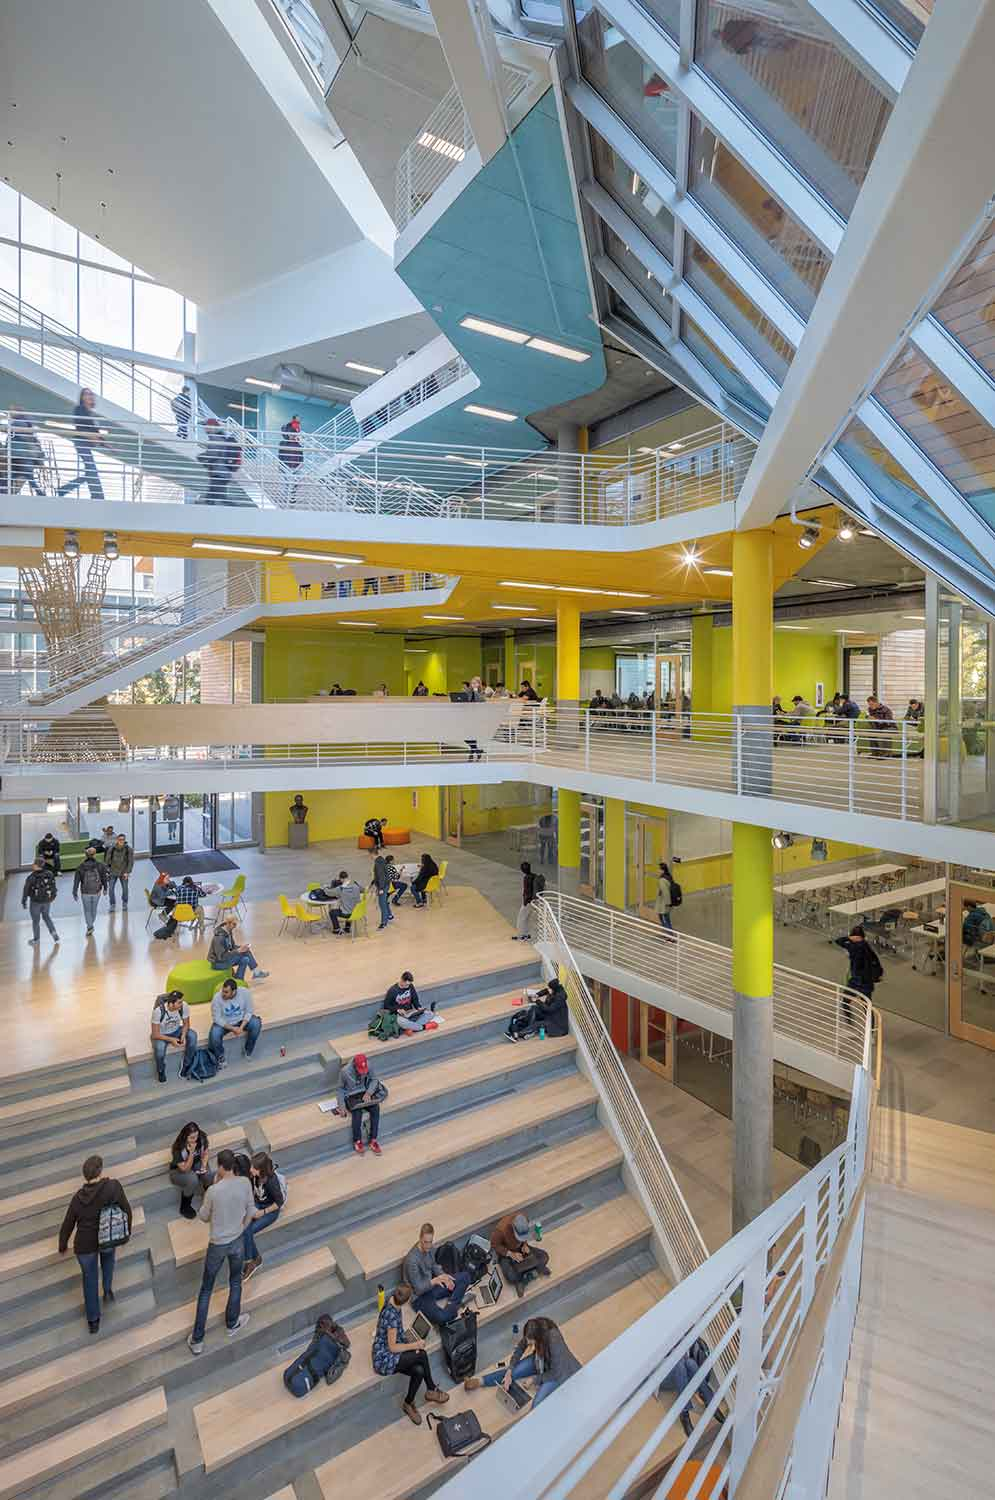 Atrium Space connects all levels of the new building and renovation. A large grand stair blends levels one and two of the building. Brad Feinknopf